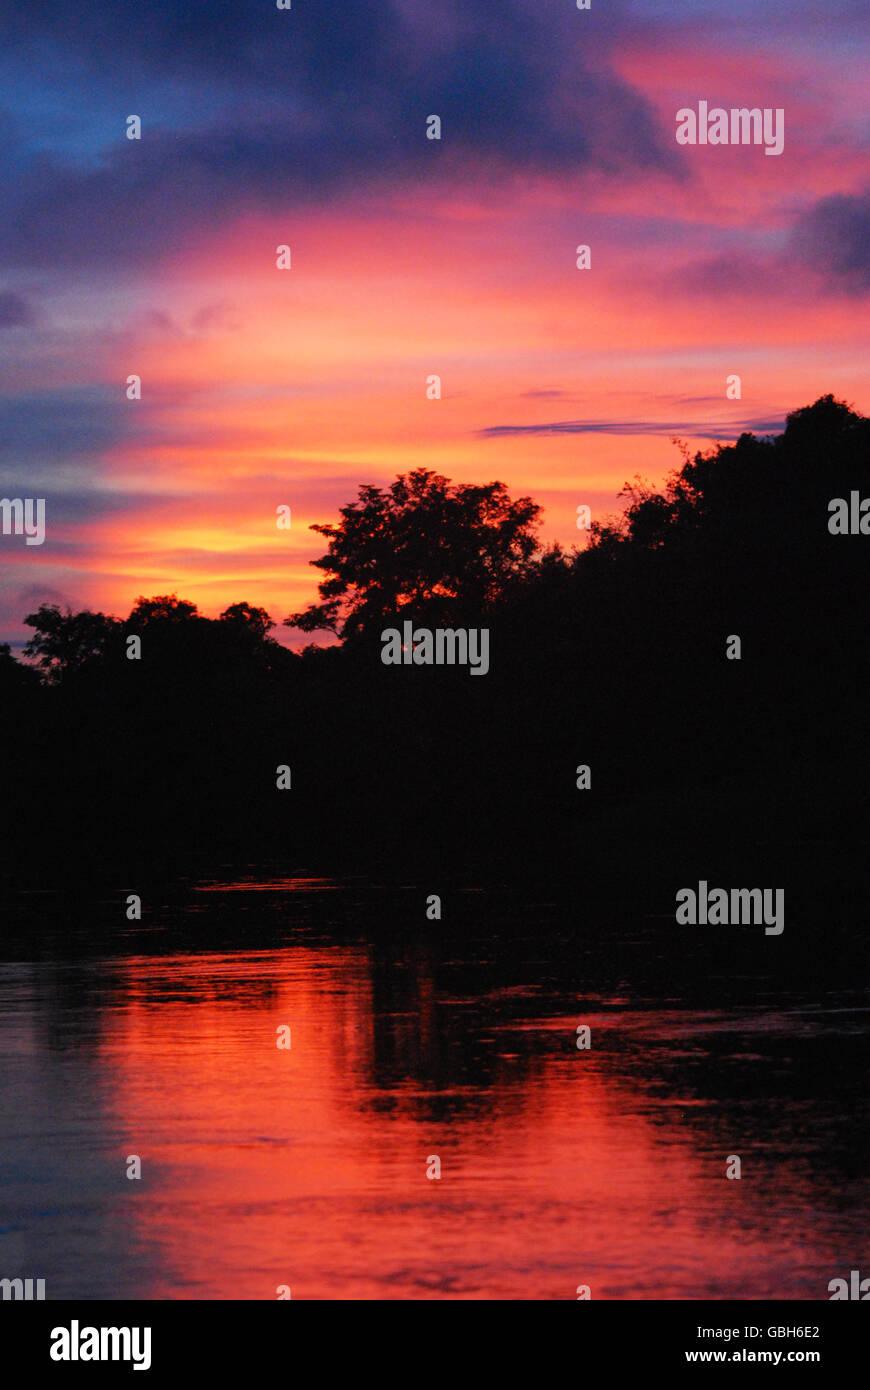 Sunset on a Bolivian pampas/pantanal tour - Stock Image